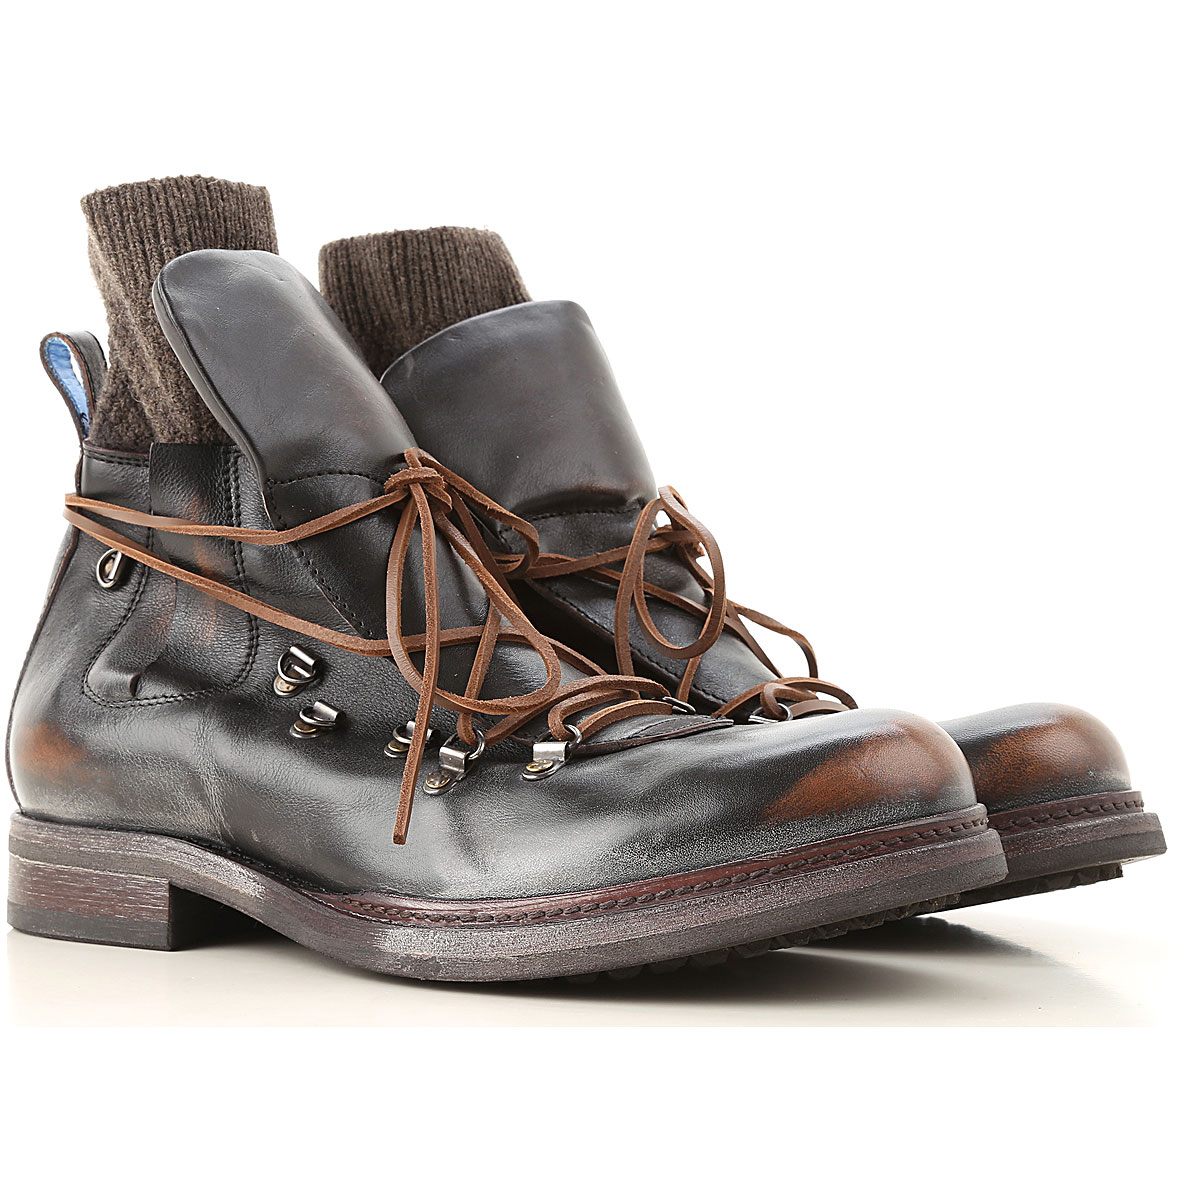 Moma Boots for Men, Booties On Sale, Brown, Leather, 2019, 10 10.25 7 7.75 9.5